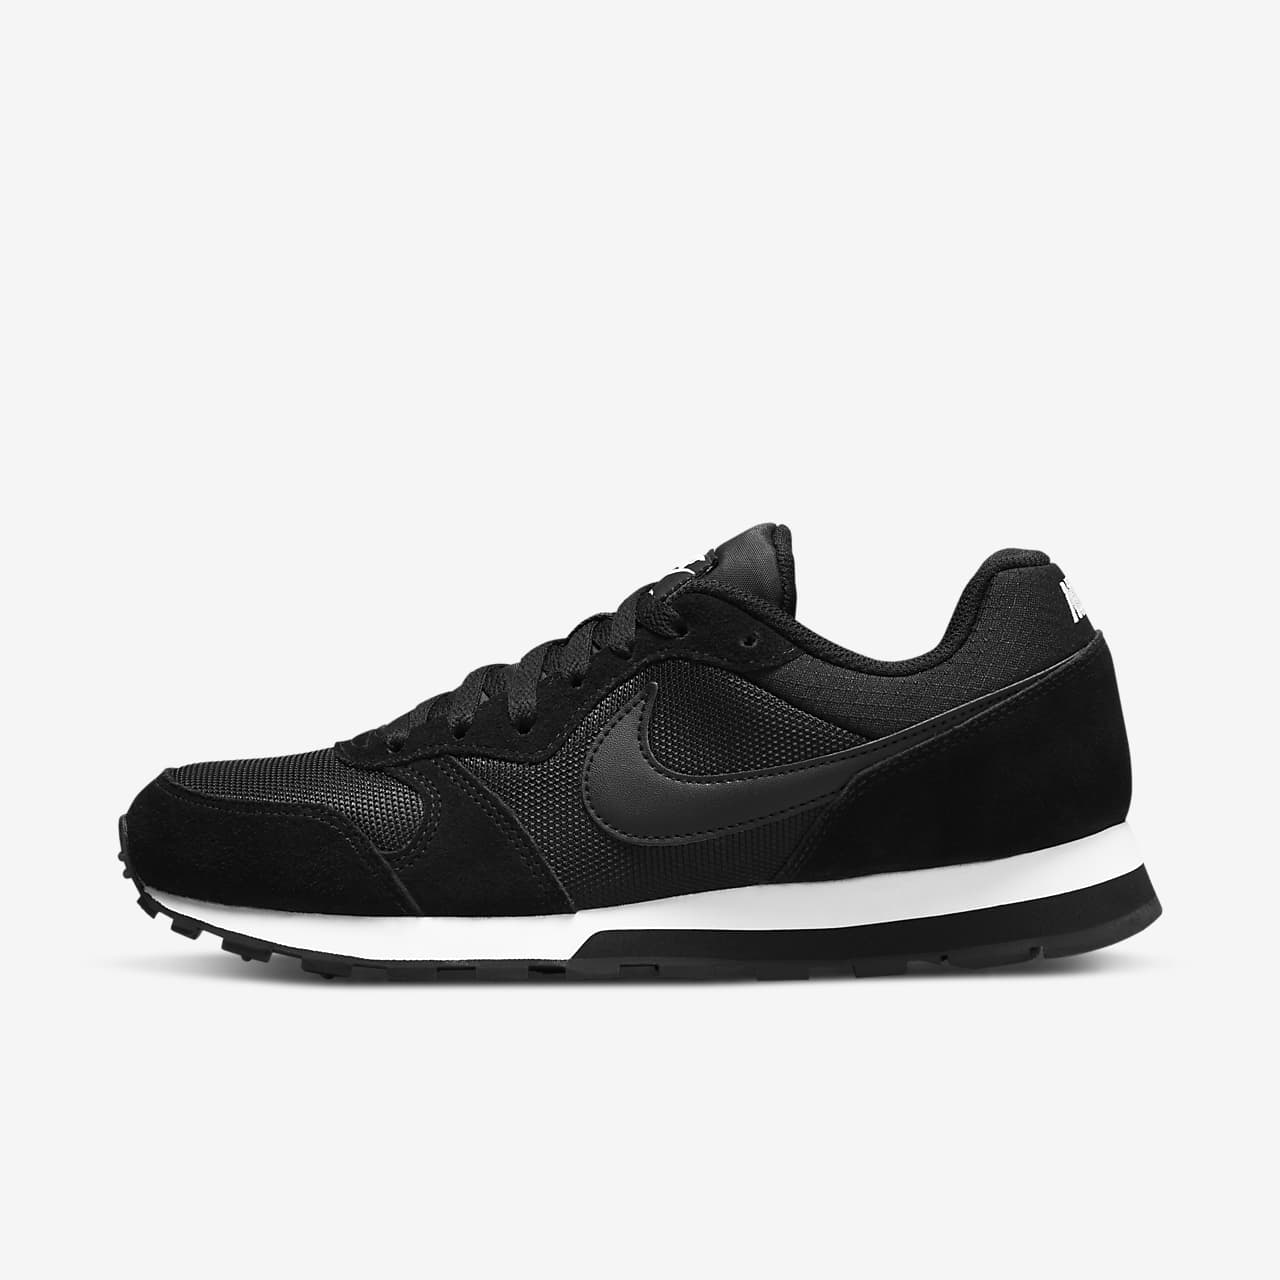 Nike Md Runner 2 EU 42